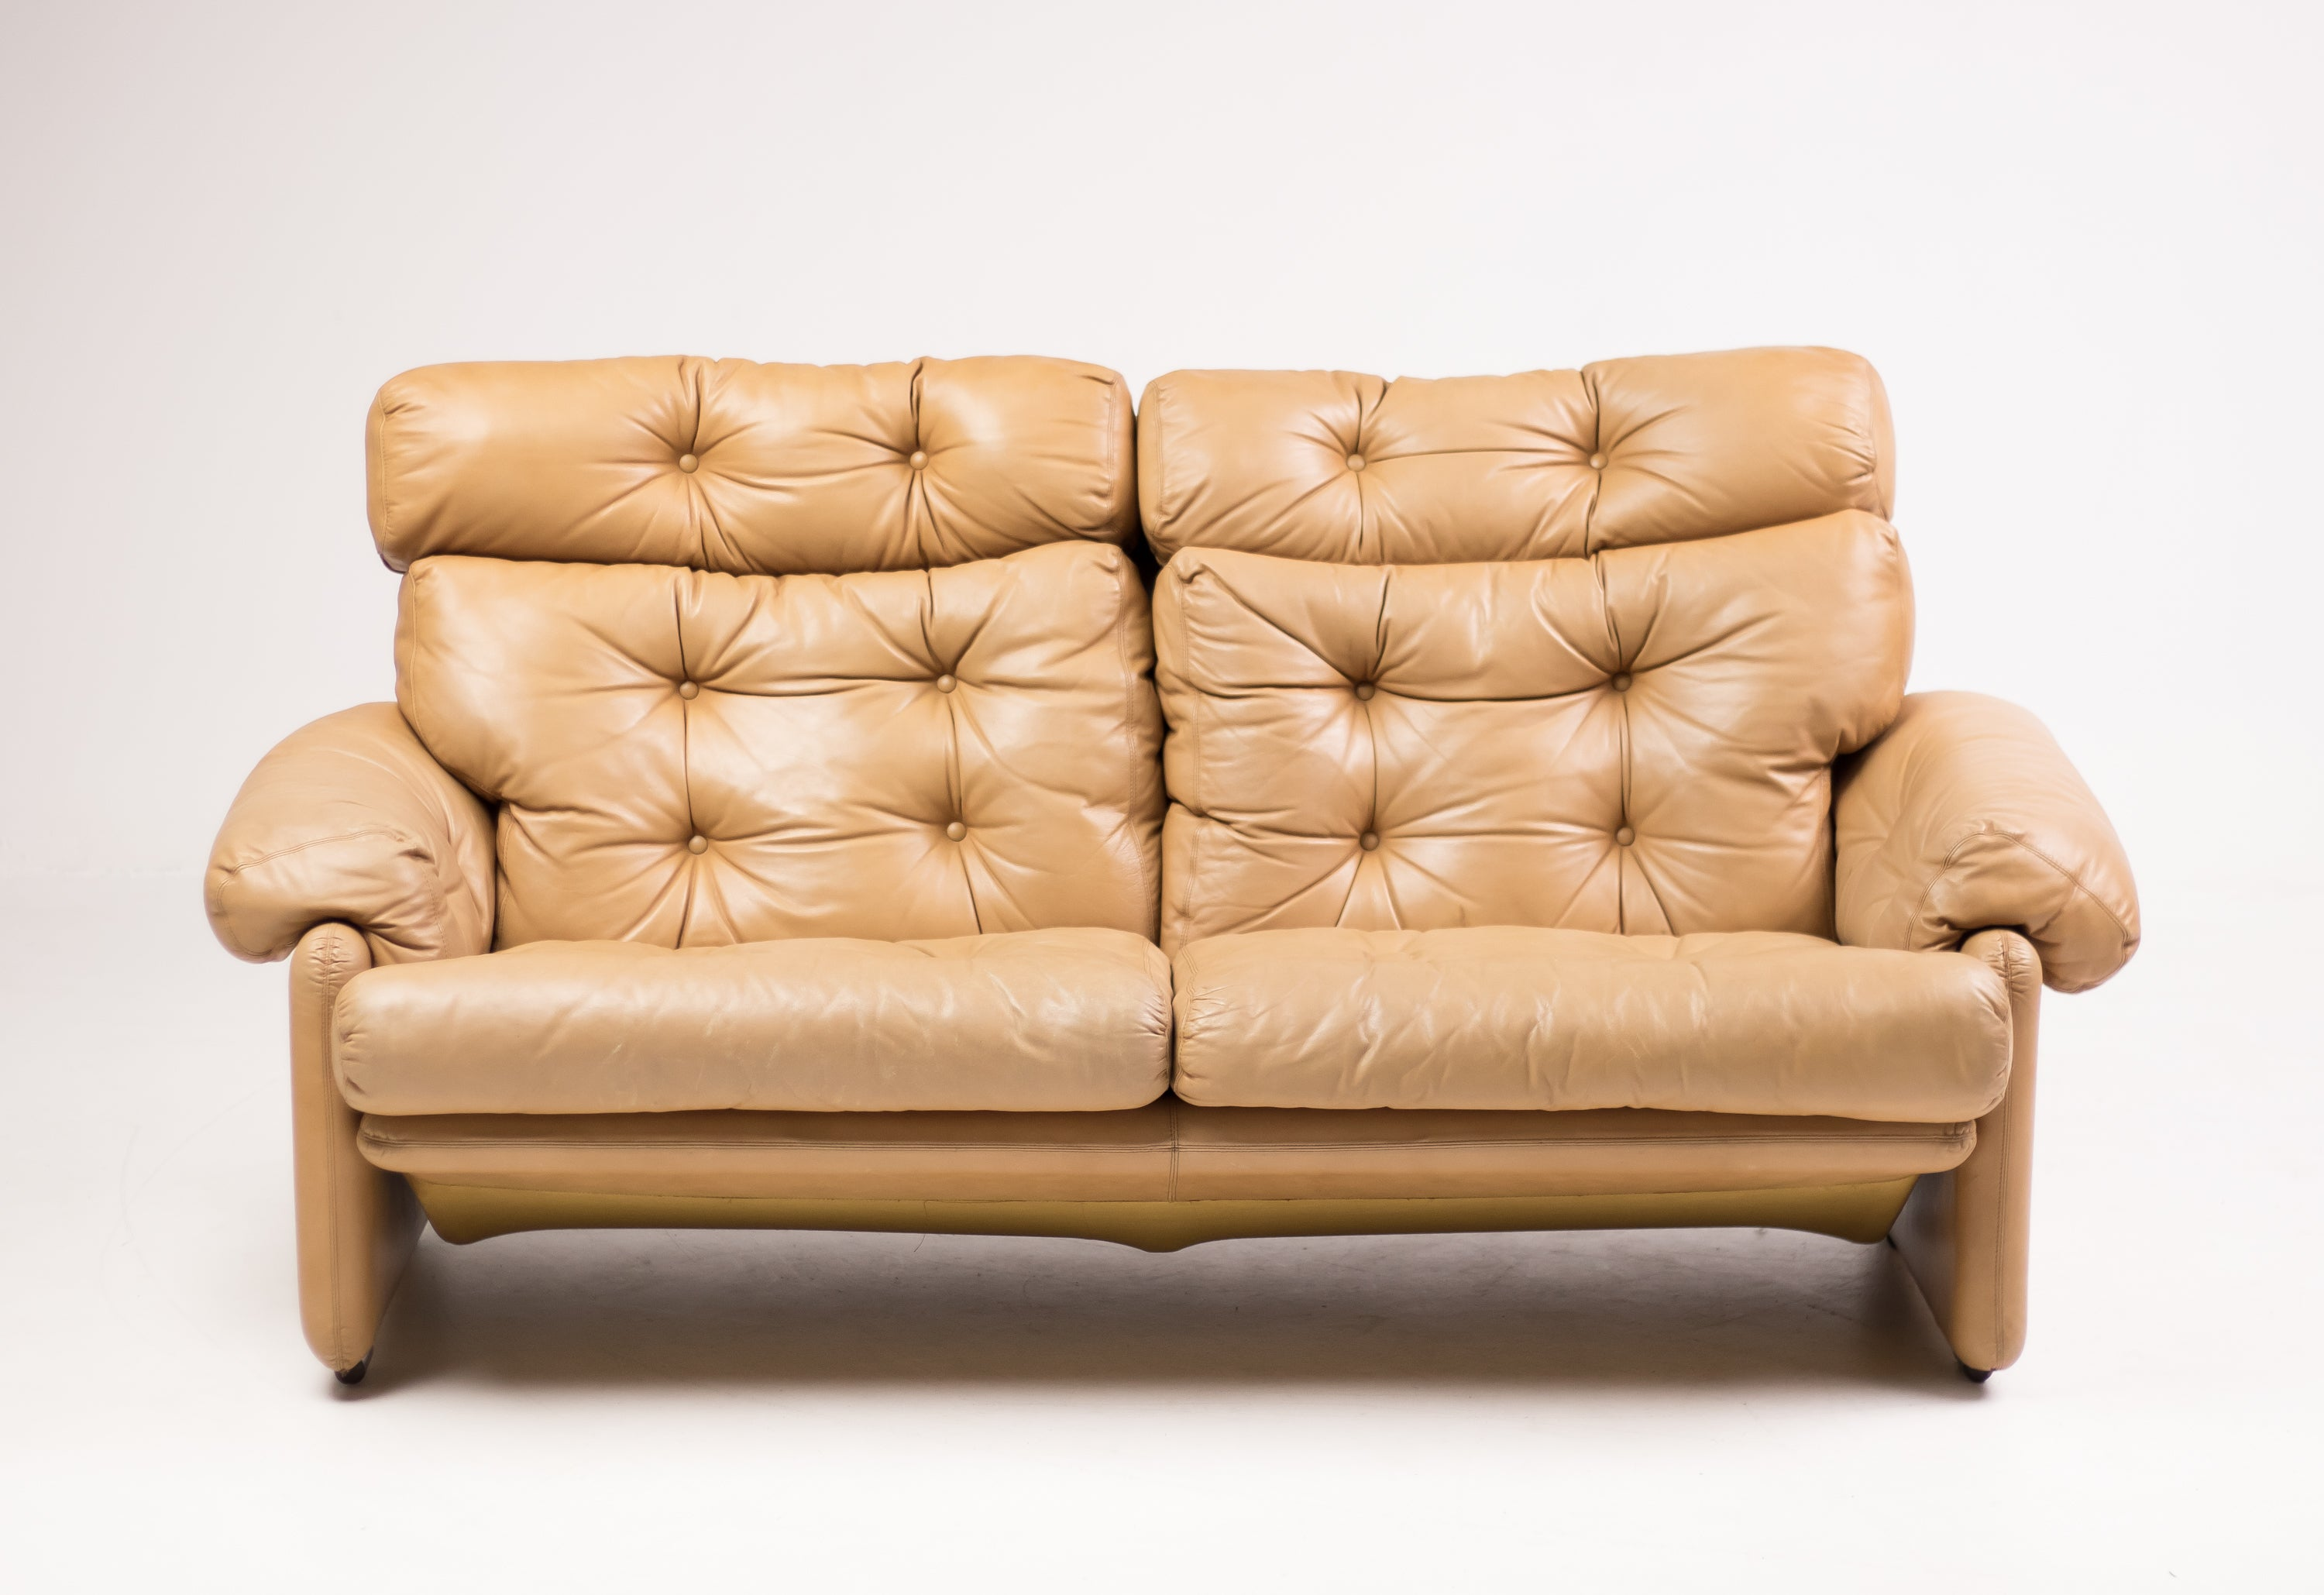 Admirable Coronado Leather Loveseat By Tobia Scarpa Andrewgaddart Wooden Chair Designs For Living Room Andrewgaddartcom